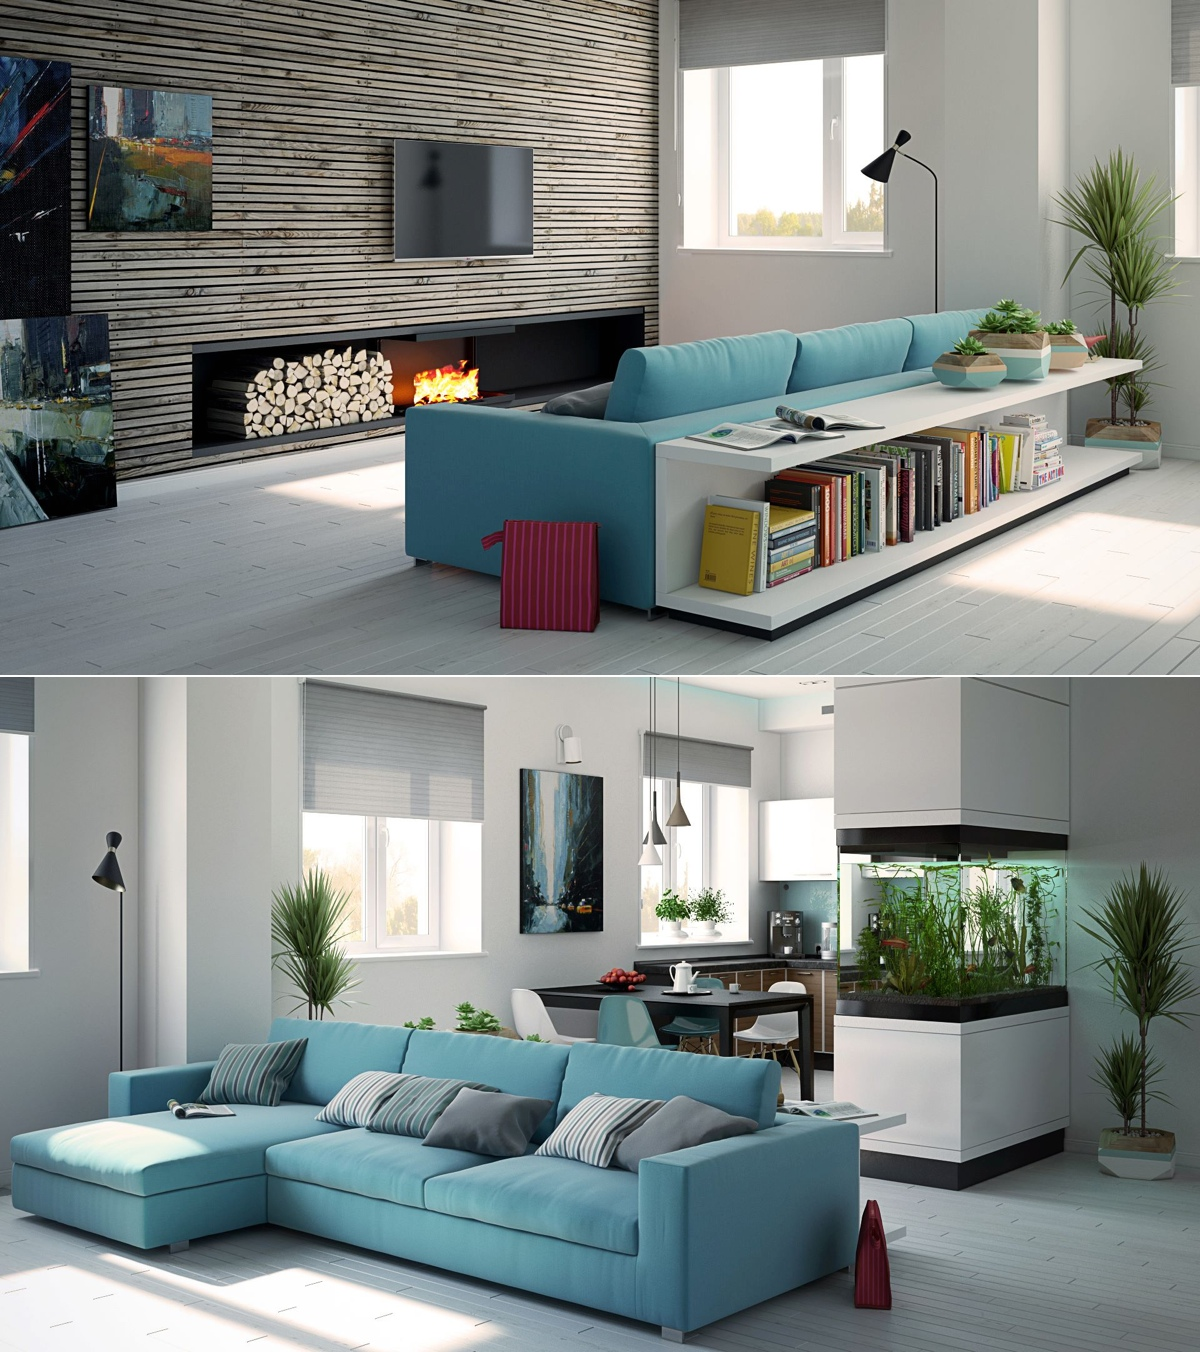 Awesomely Stylish Urban Living Rooms. Modern Kitchen Cabinets Seattle. Houzz White Kitchen Cabinets. Kitchen Cabinets From Ikea. Kitchen Cabinets Las Vegas. Kitchen Cabinet Decoration. Kitchen Cabinet Designs Pictures. Kitchen Cabinet Quotes. Kitchens With Glass Cabinet Doors